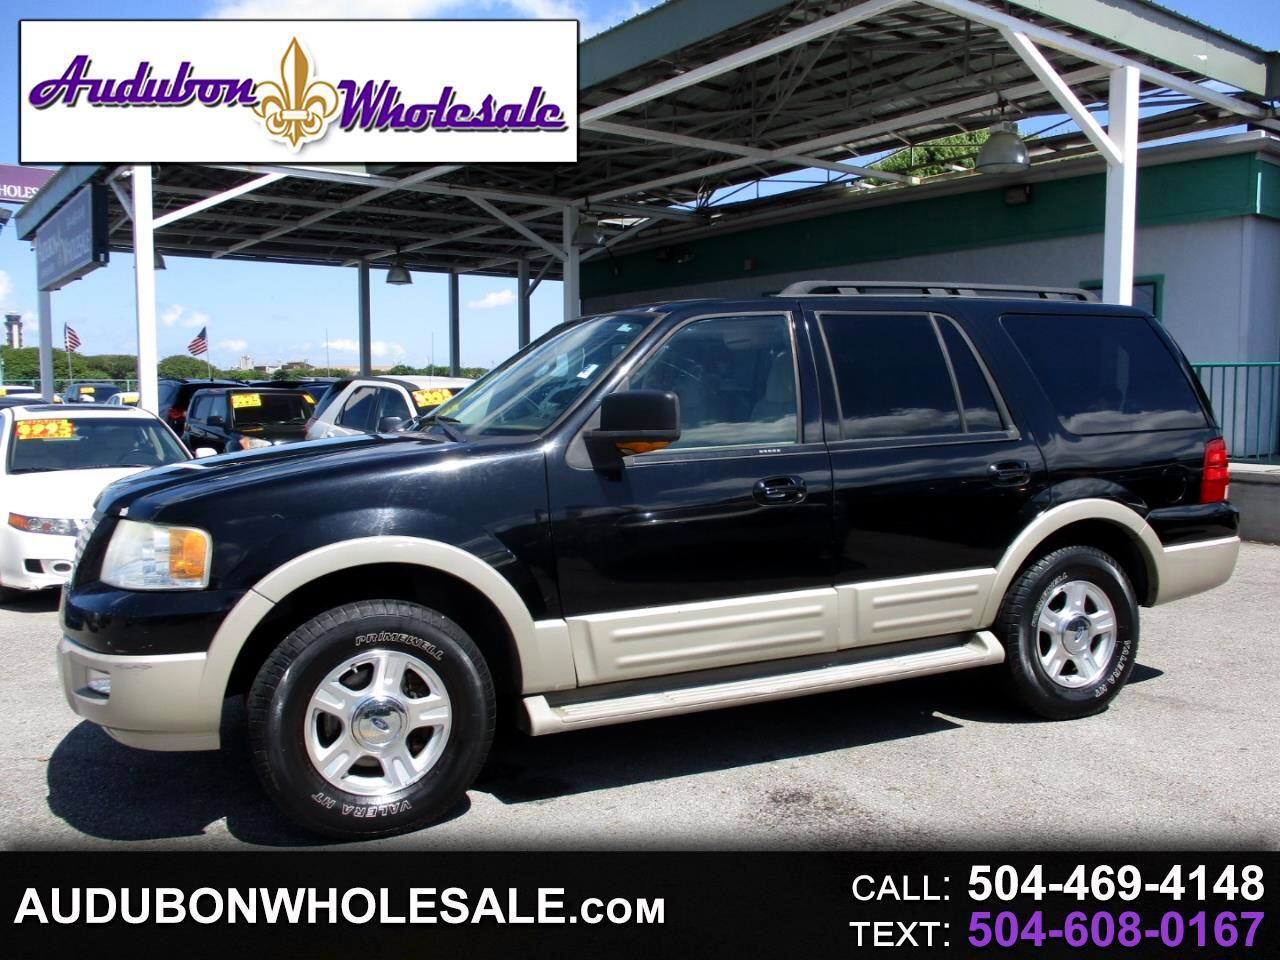 2006 Ford Expedition Eddie Bauer 2WD